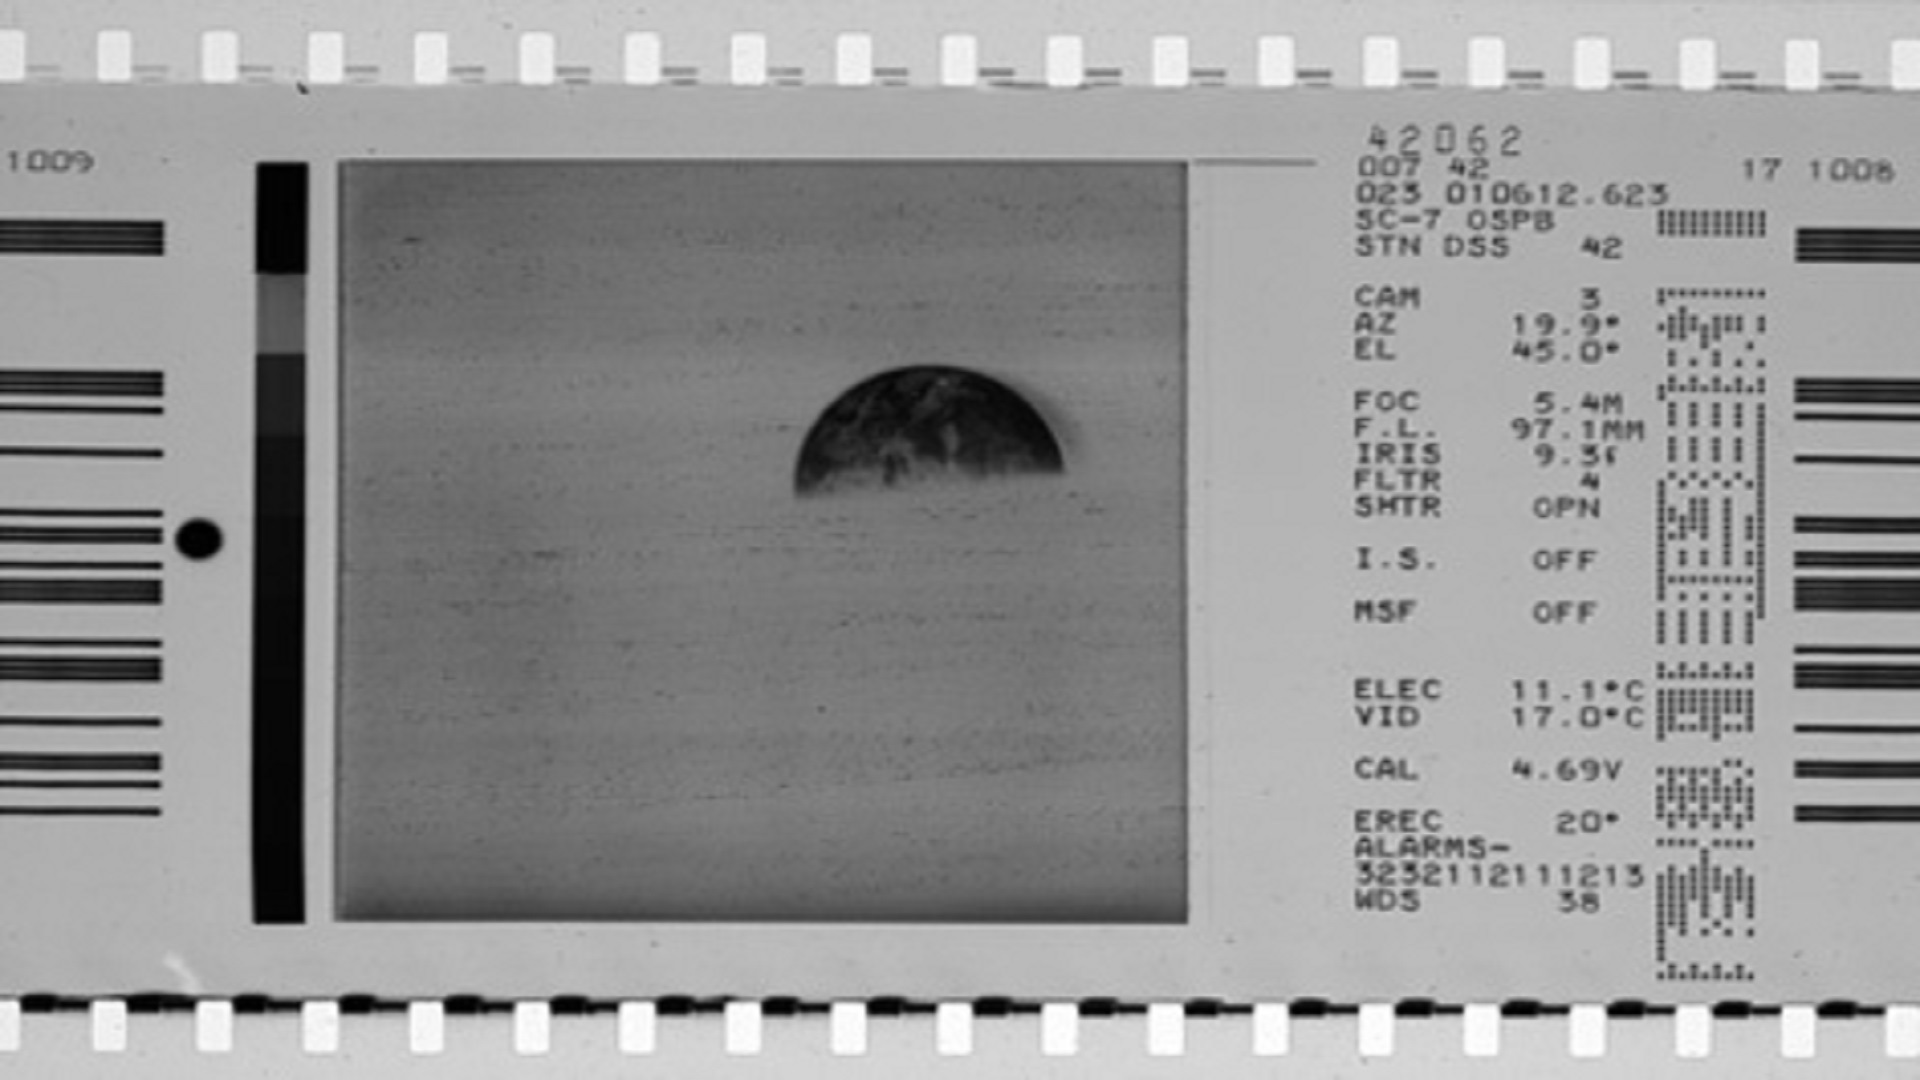 Typical film image from Surveyor mission